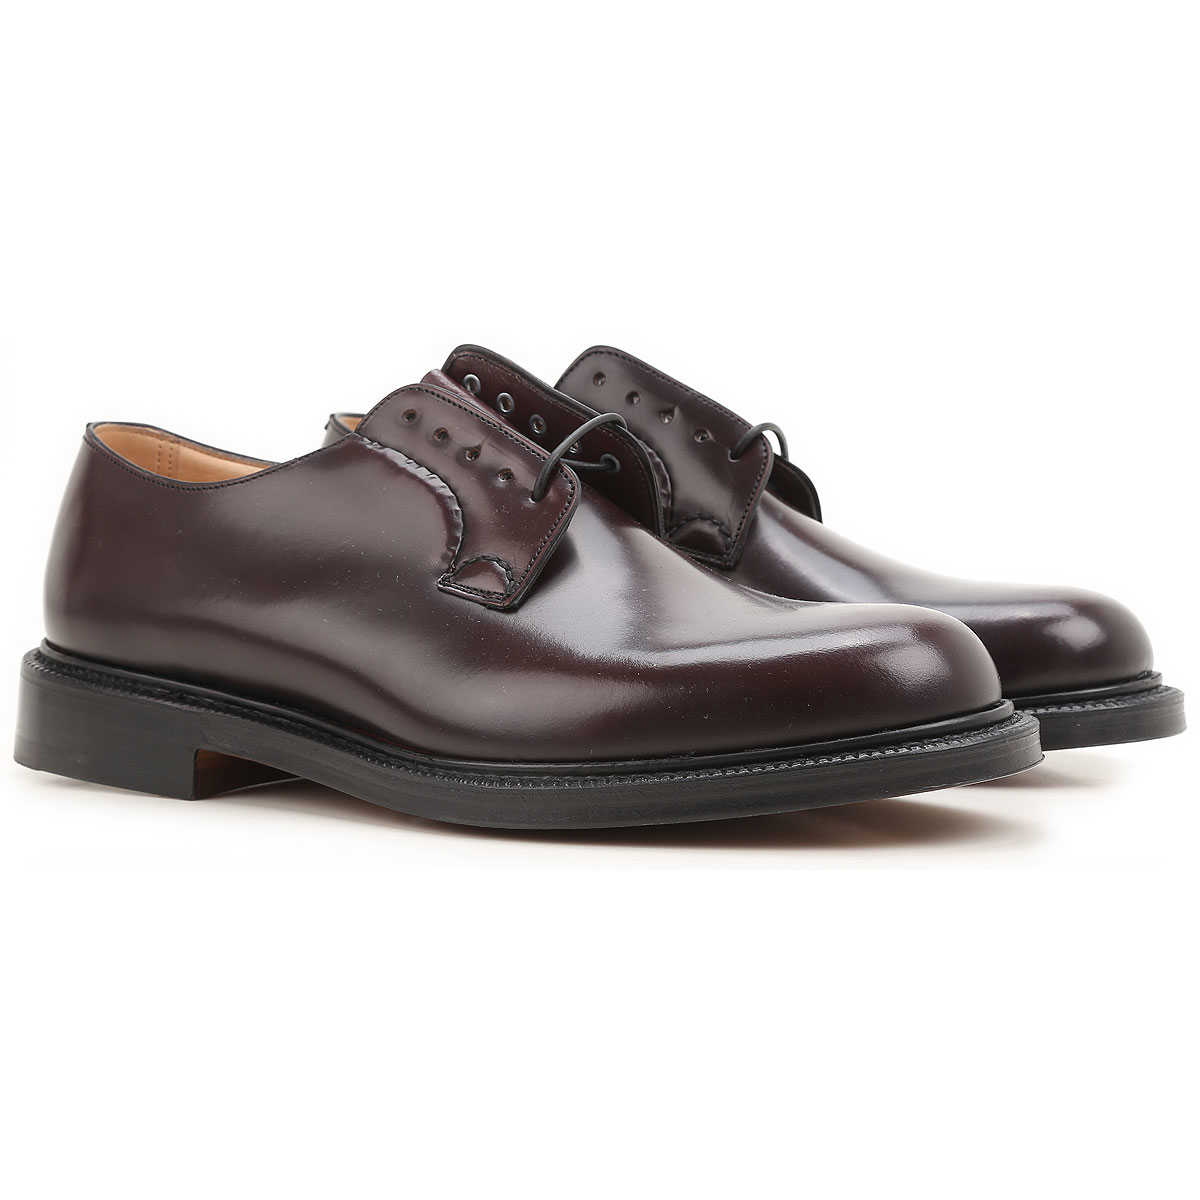 Church's Lace Up Shoes for Men Oxfords